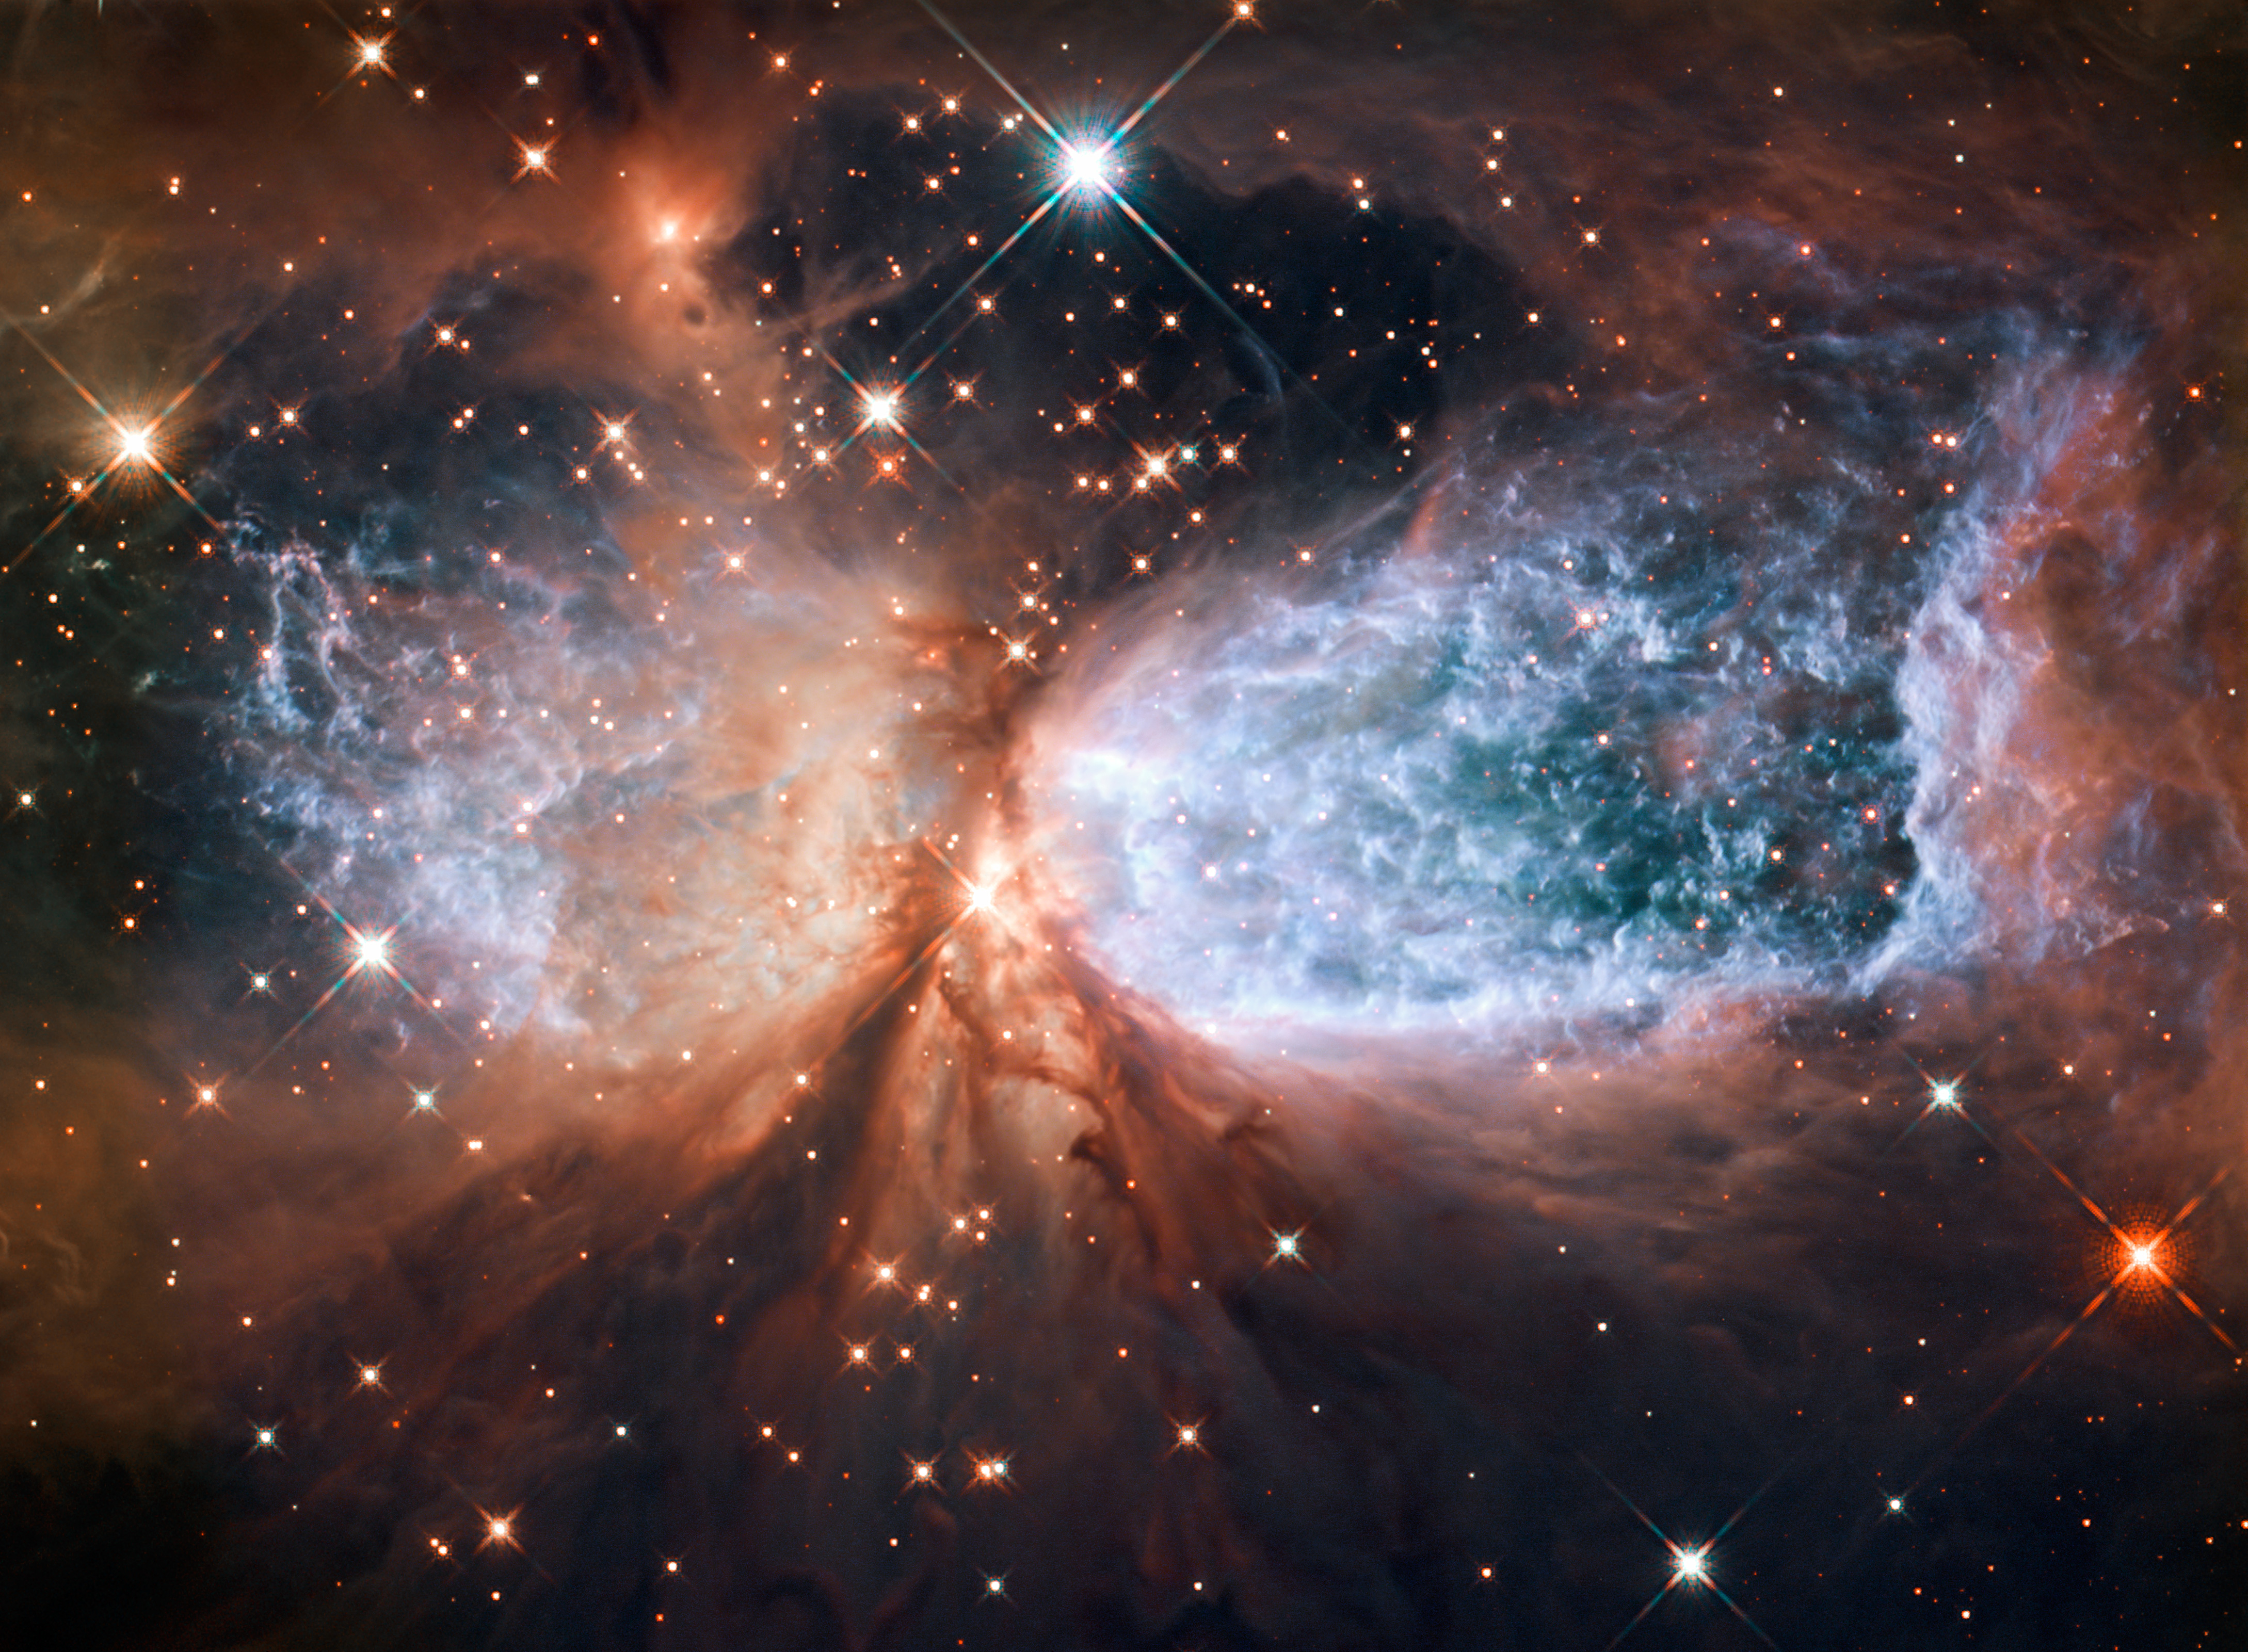 hubble Fabric-of-Space-Time-Seen-Getting-Viciously-Torn-Apart-by-Hubble-Telescope